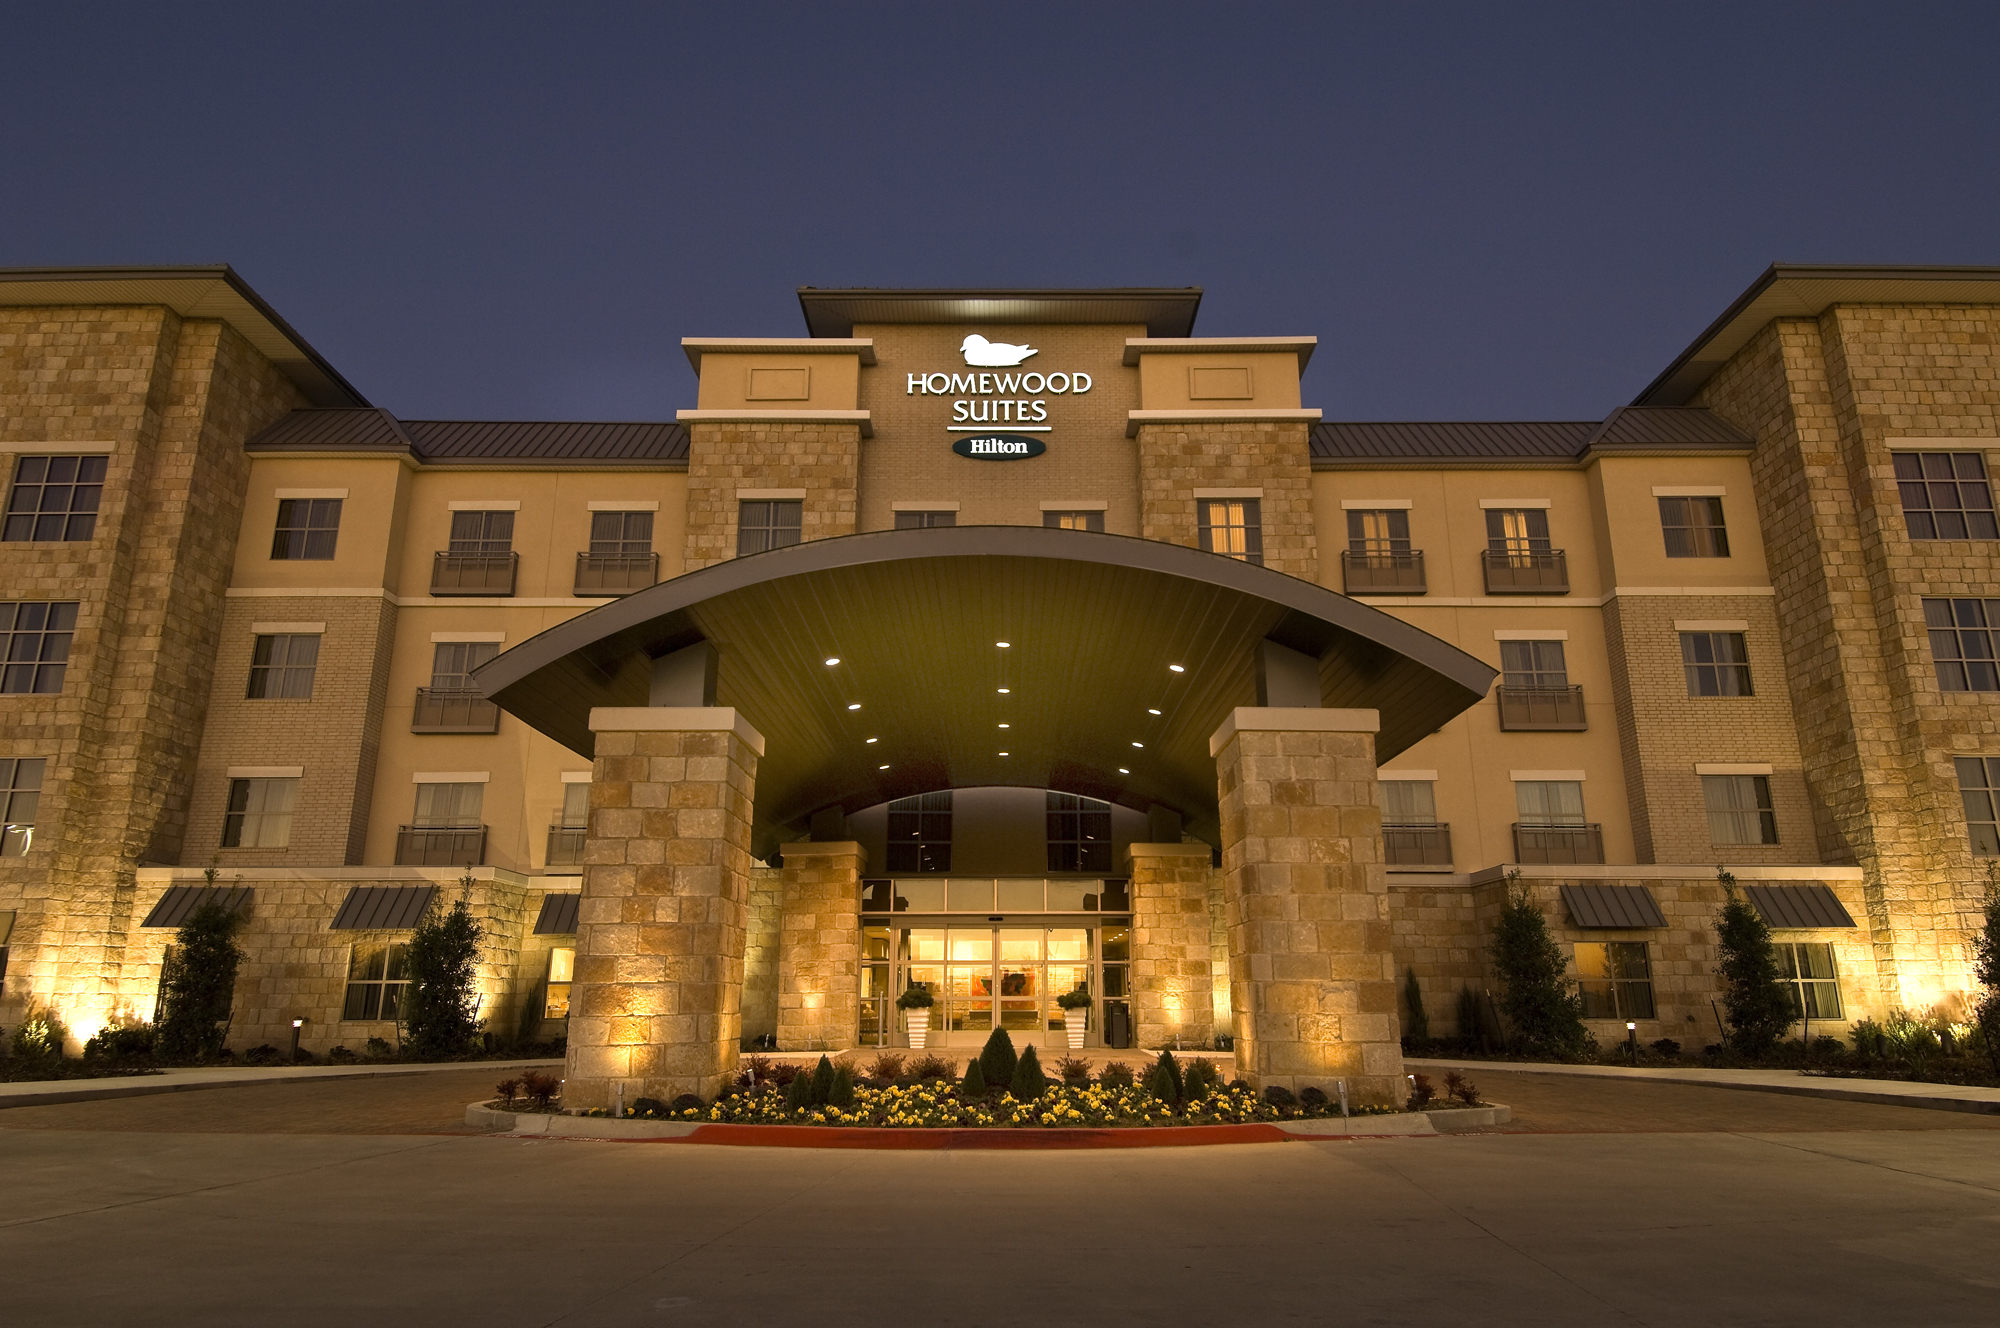 homewood suites by hilton celebrates 20th anniversary